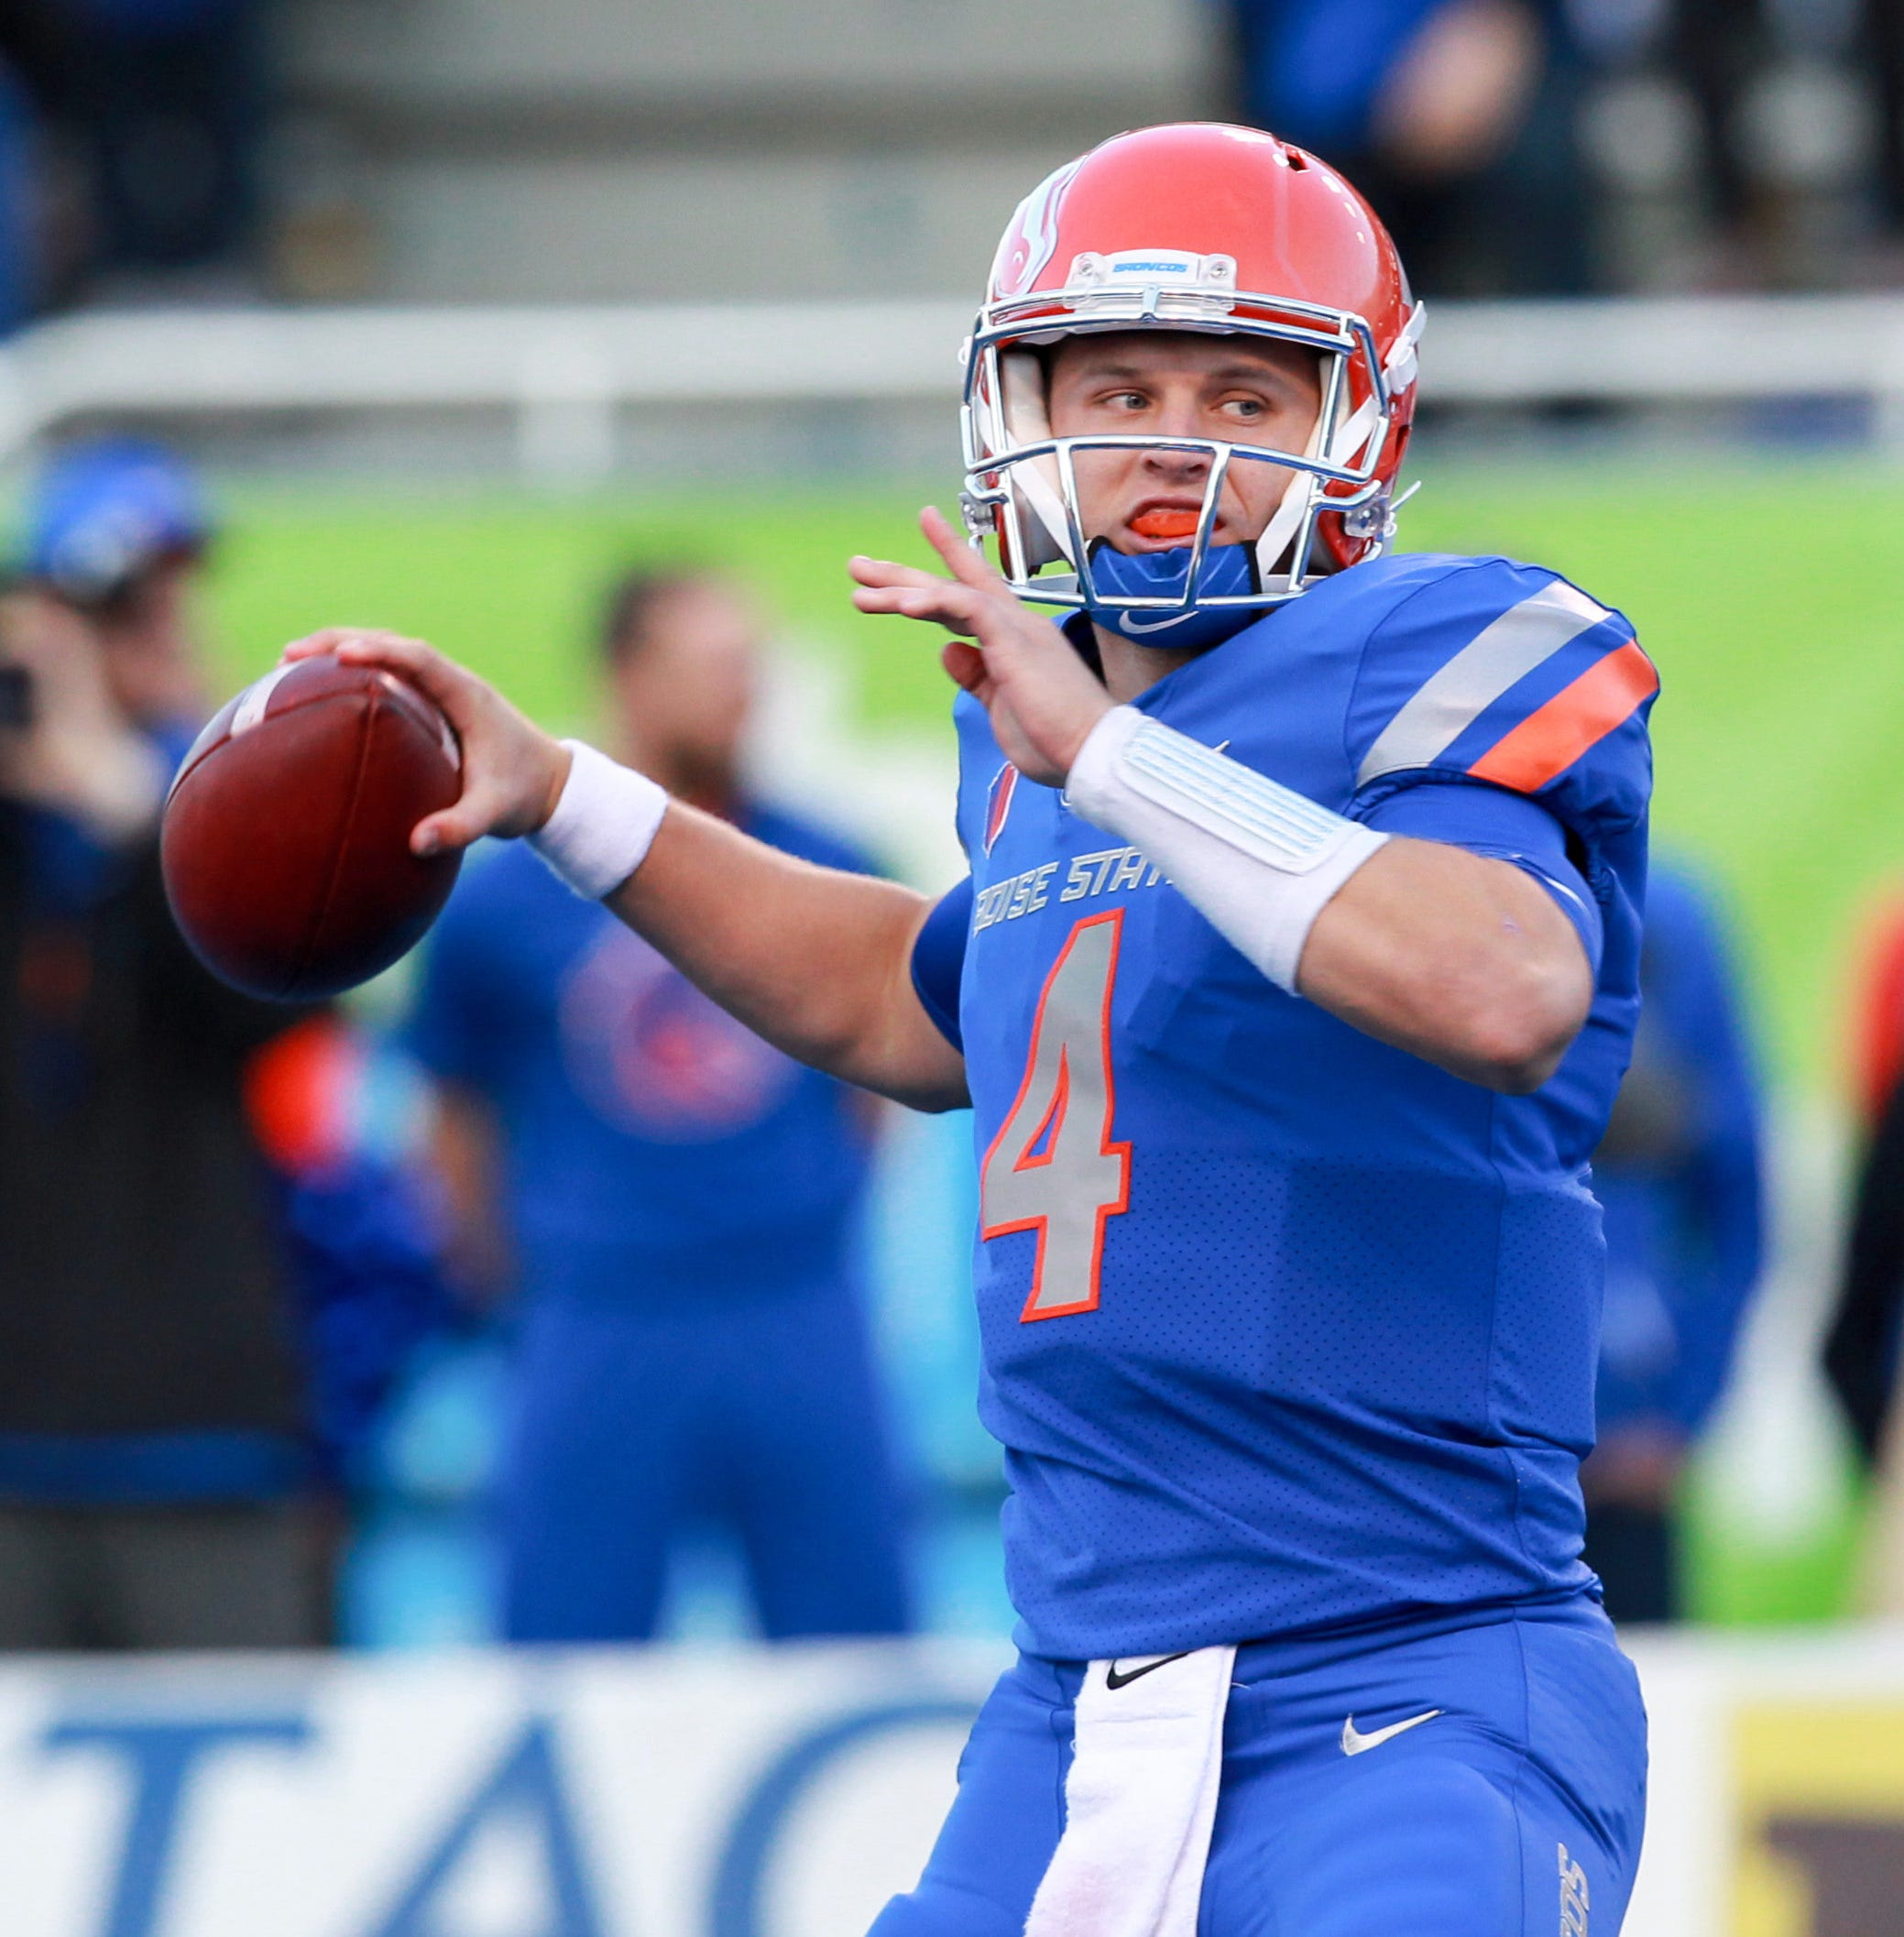 Boise State quarterback Brett Rypien looks to pass against Virginia during a game last season.  Brian Losness/USA TODAY Sports Sep 22, 2017; Boise, ID, USA; Boise State Broncos quarterback Brett Rypien (4) throws the ball during the first half against the Virginia Cavaliers at Albertsons Stadium. Mandatory Credit: Brian Losness-USA TODAY Sports